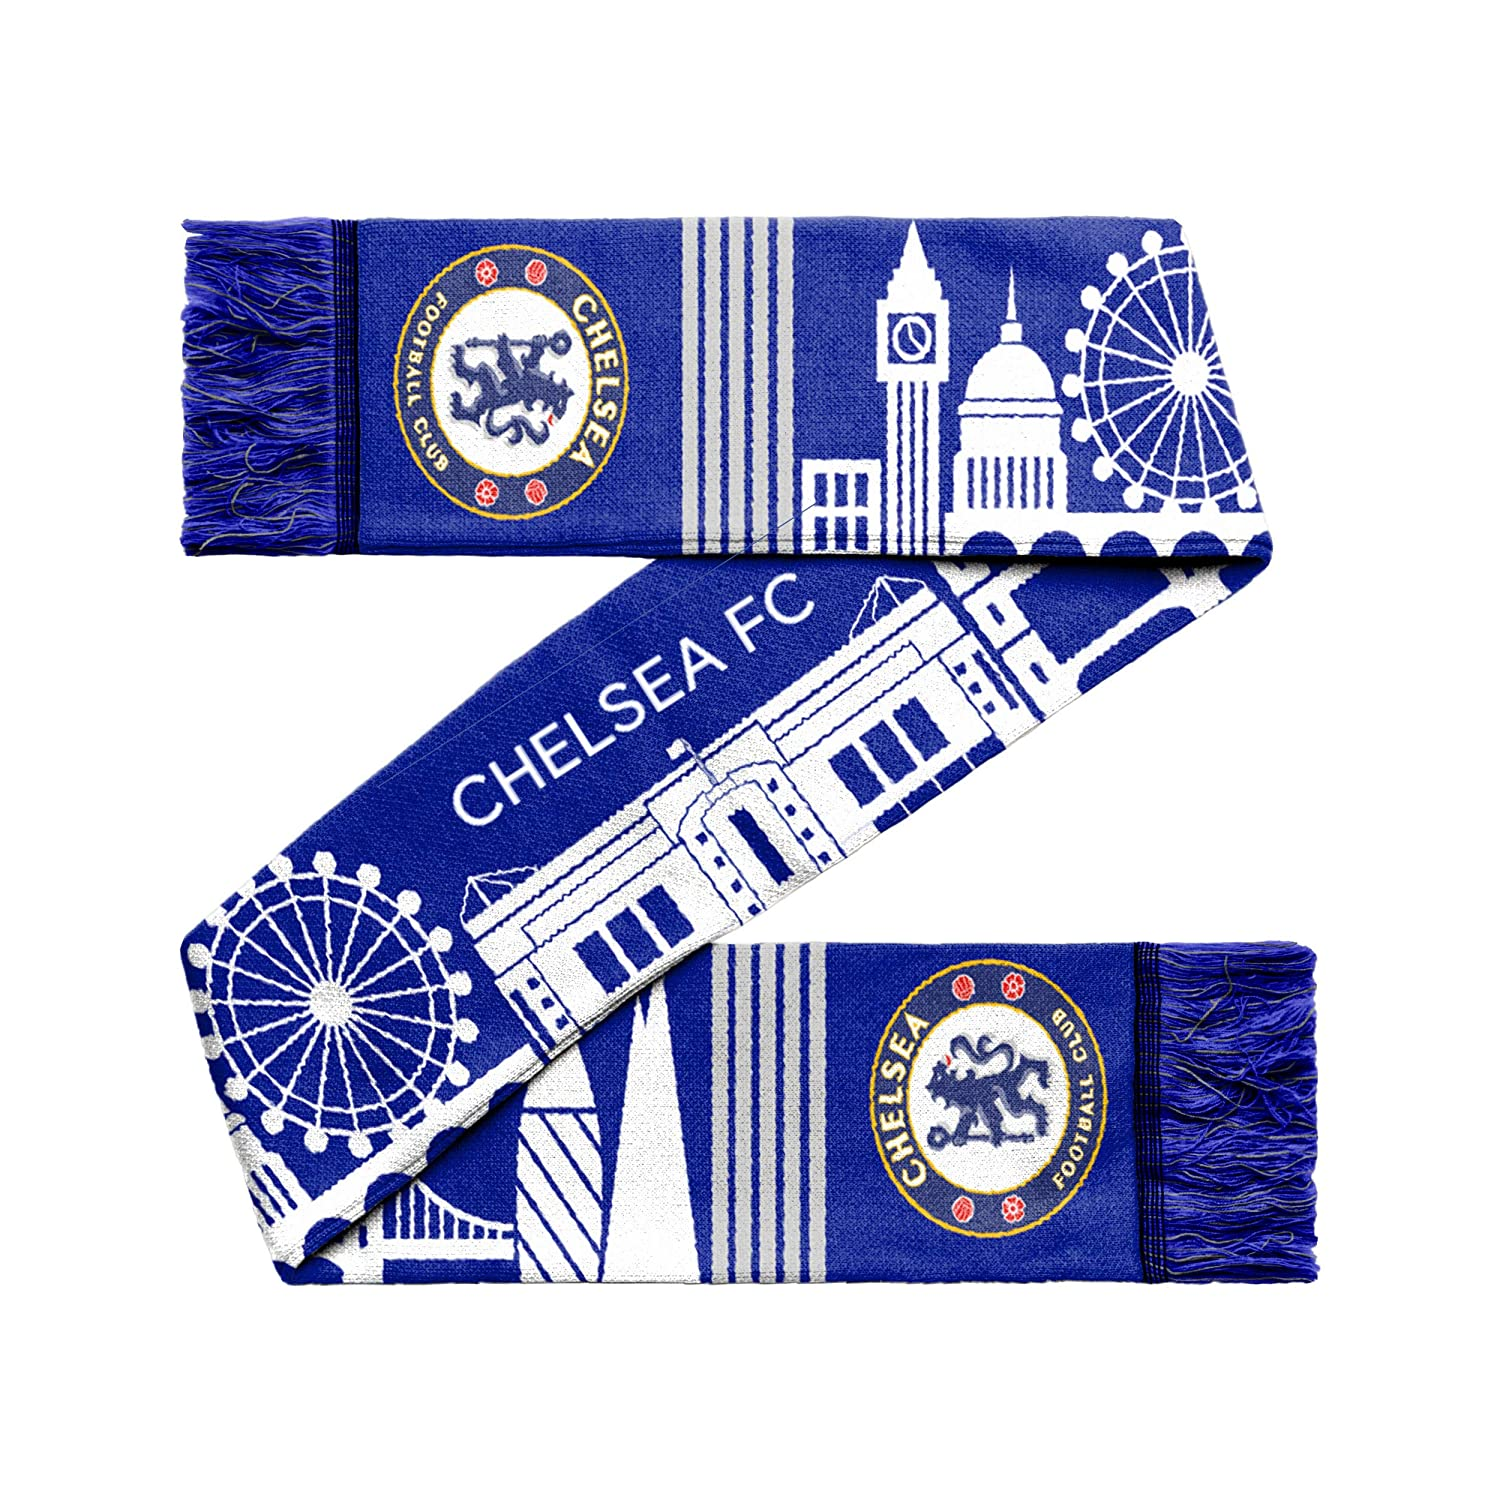 833bde8622f Chelsea FC City Skyline Scarf: Amazon.co.uk: Sports & Outdoors